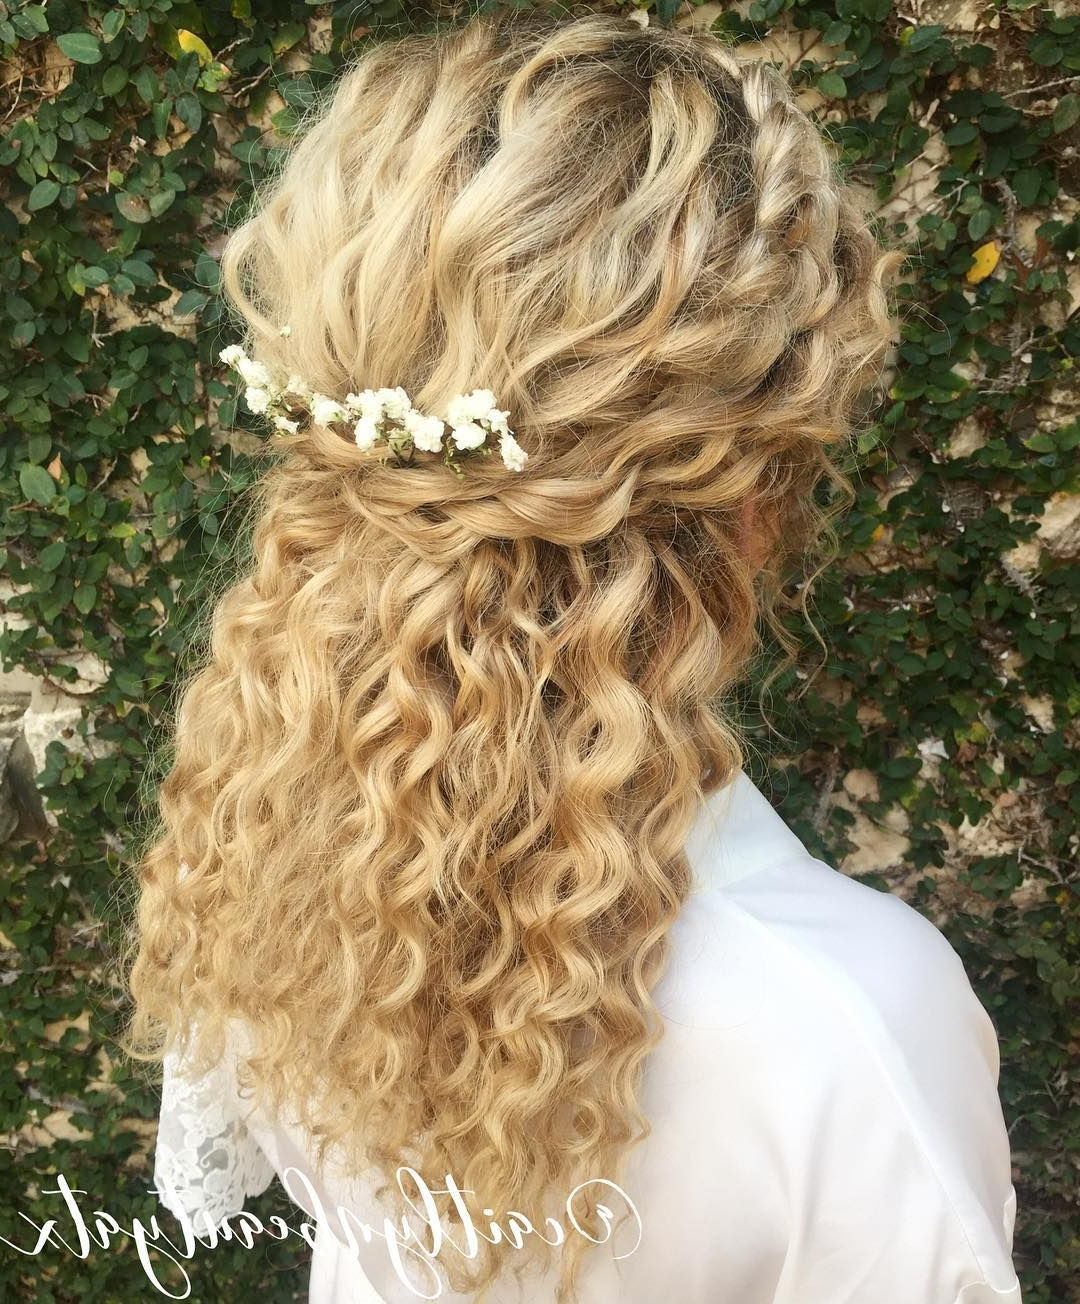 Natural Curly Bridal Hair (View 8 of 20)